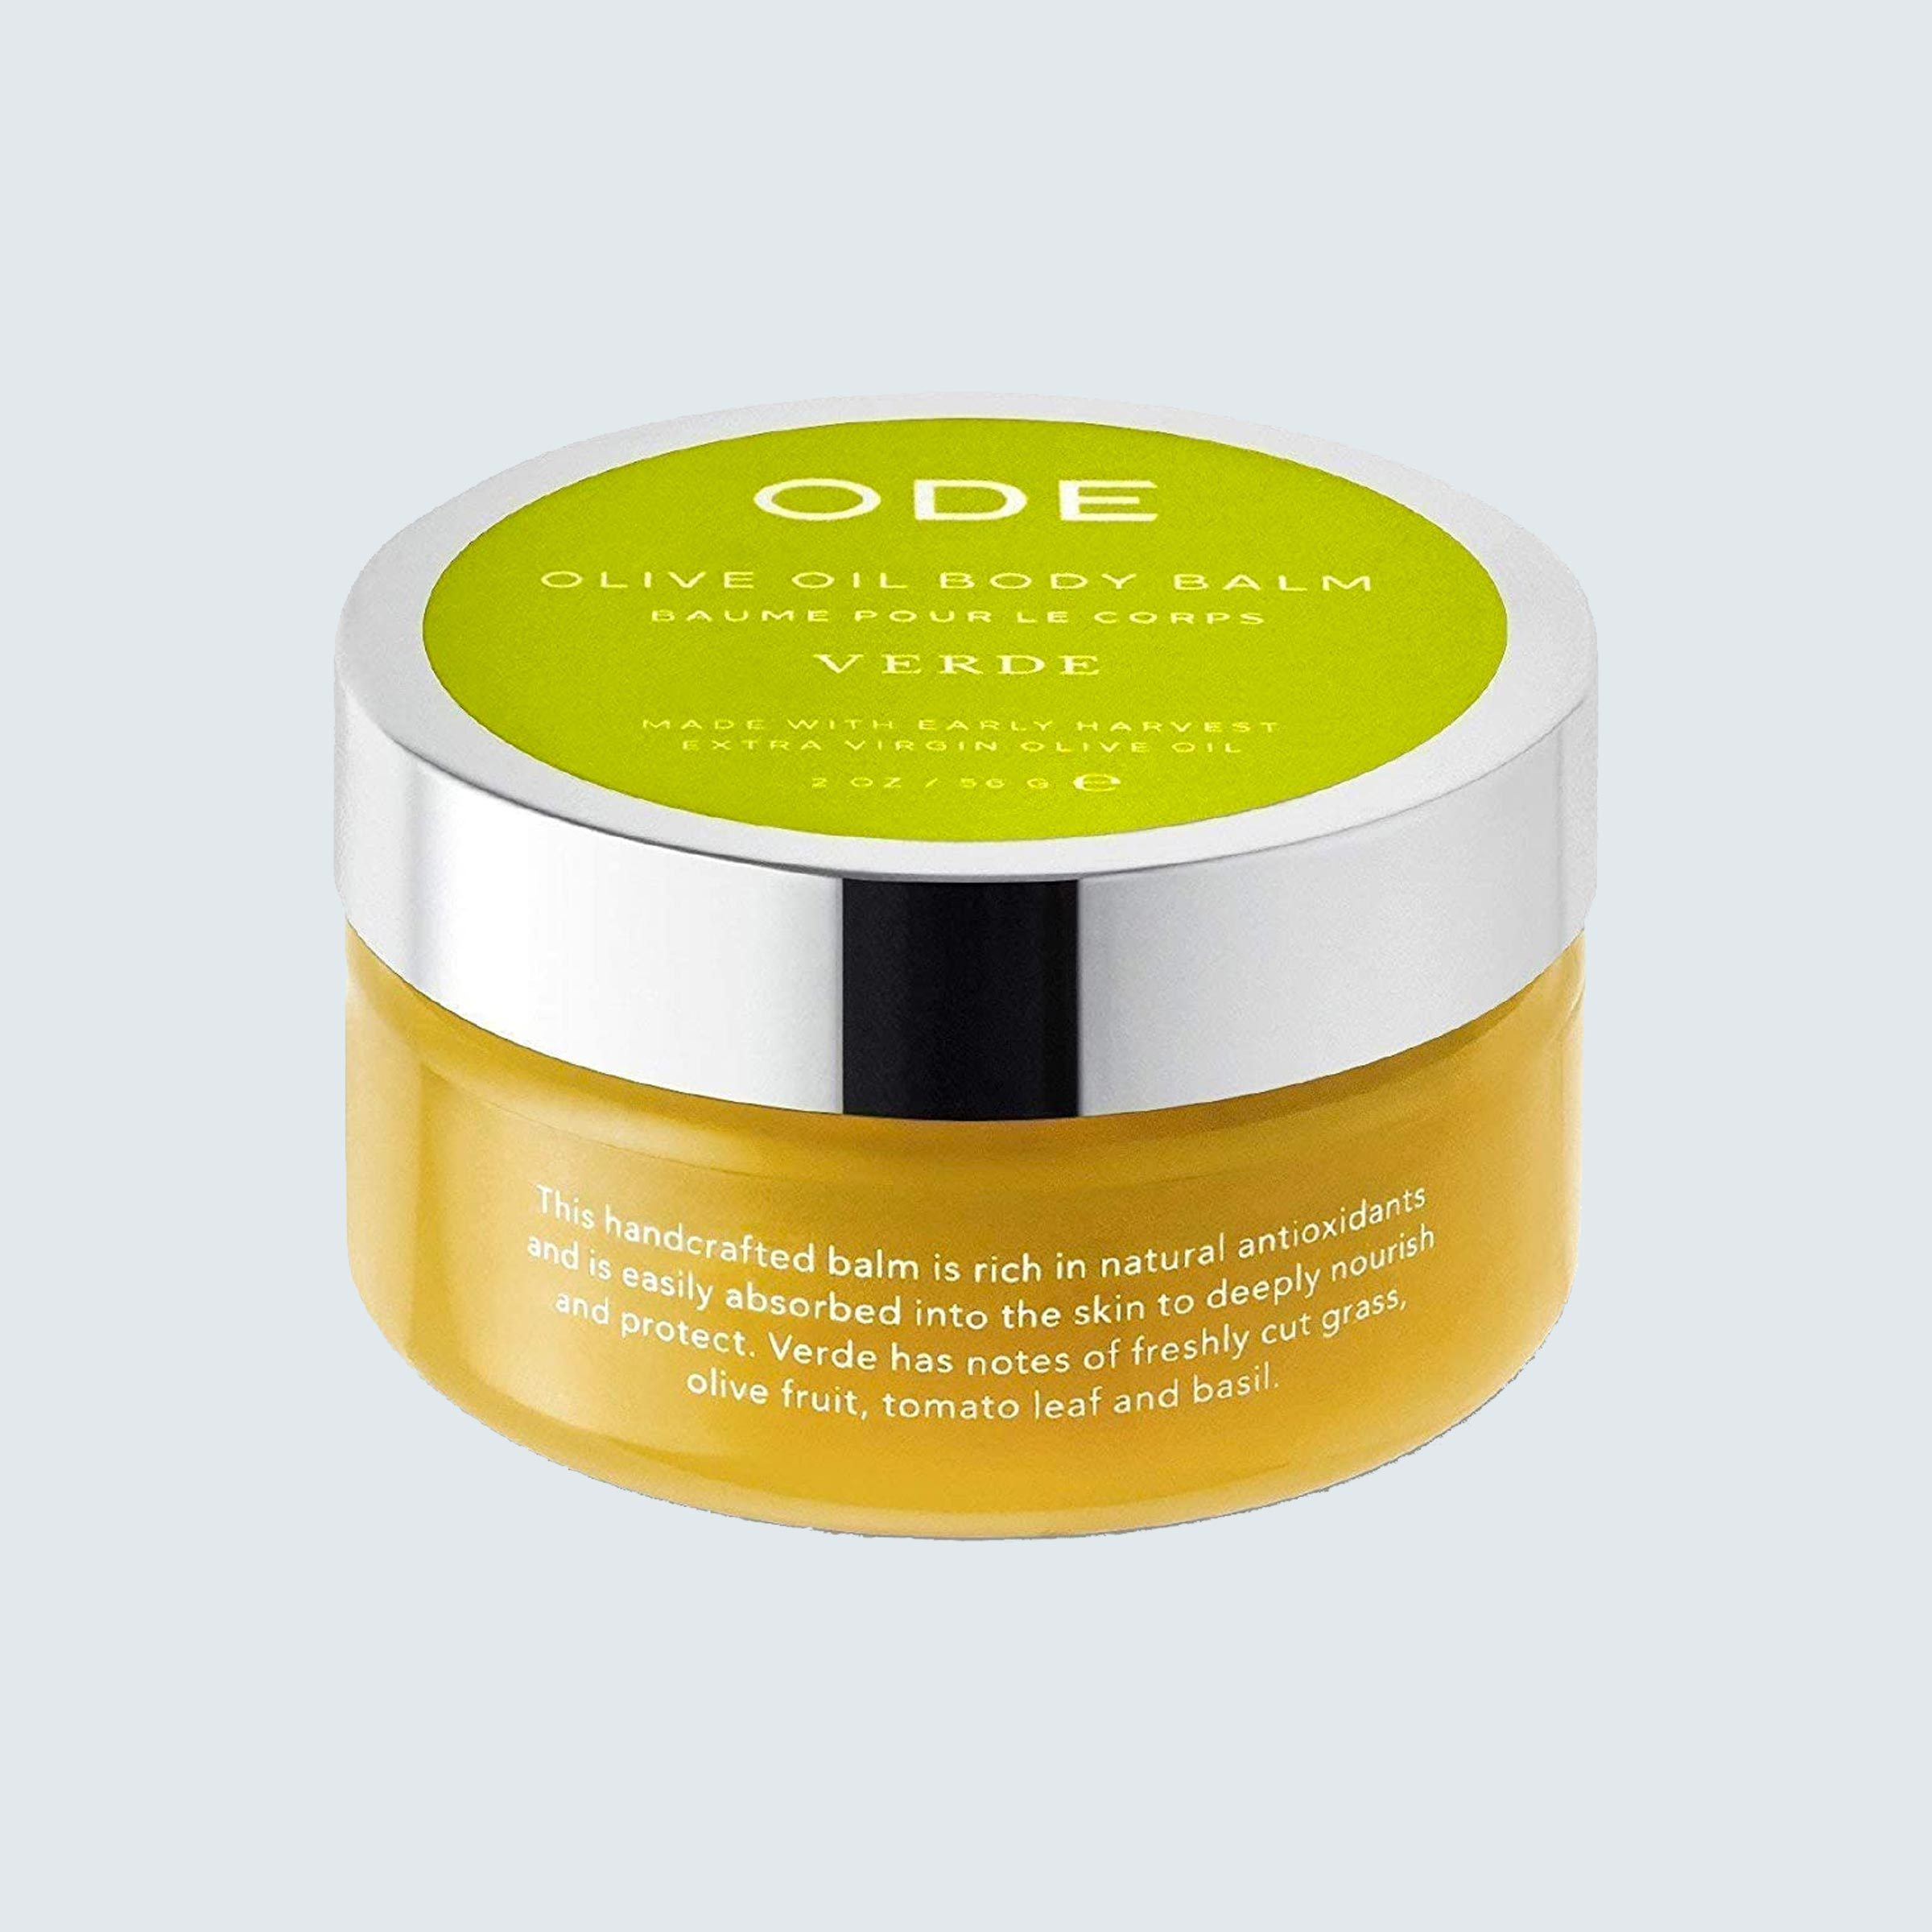 ODE Olive Oil Body Balm